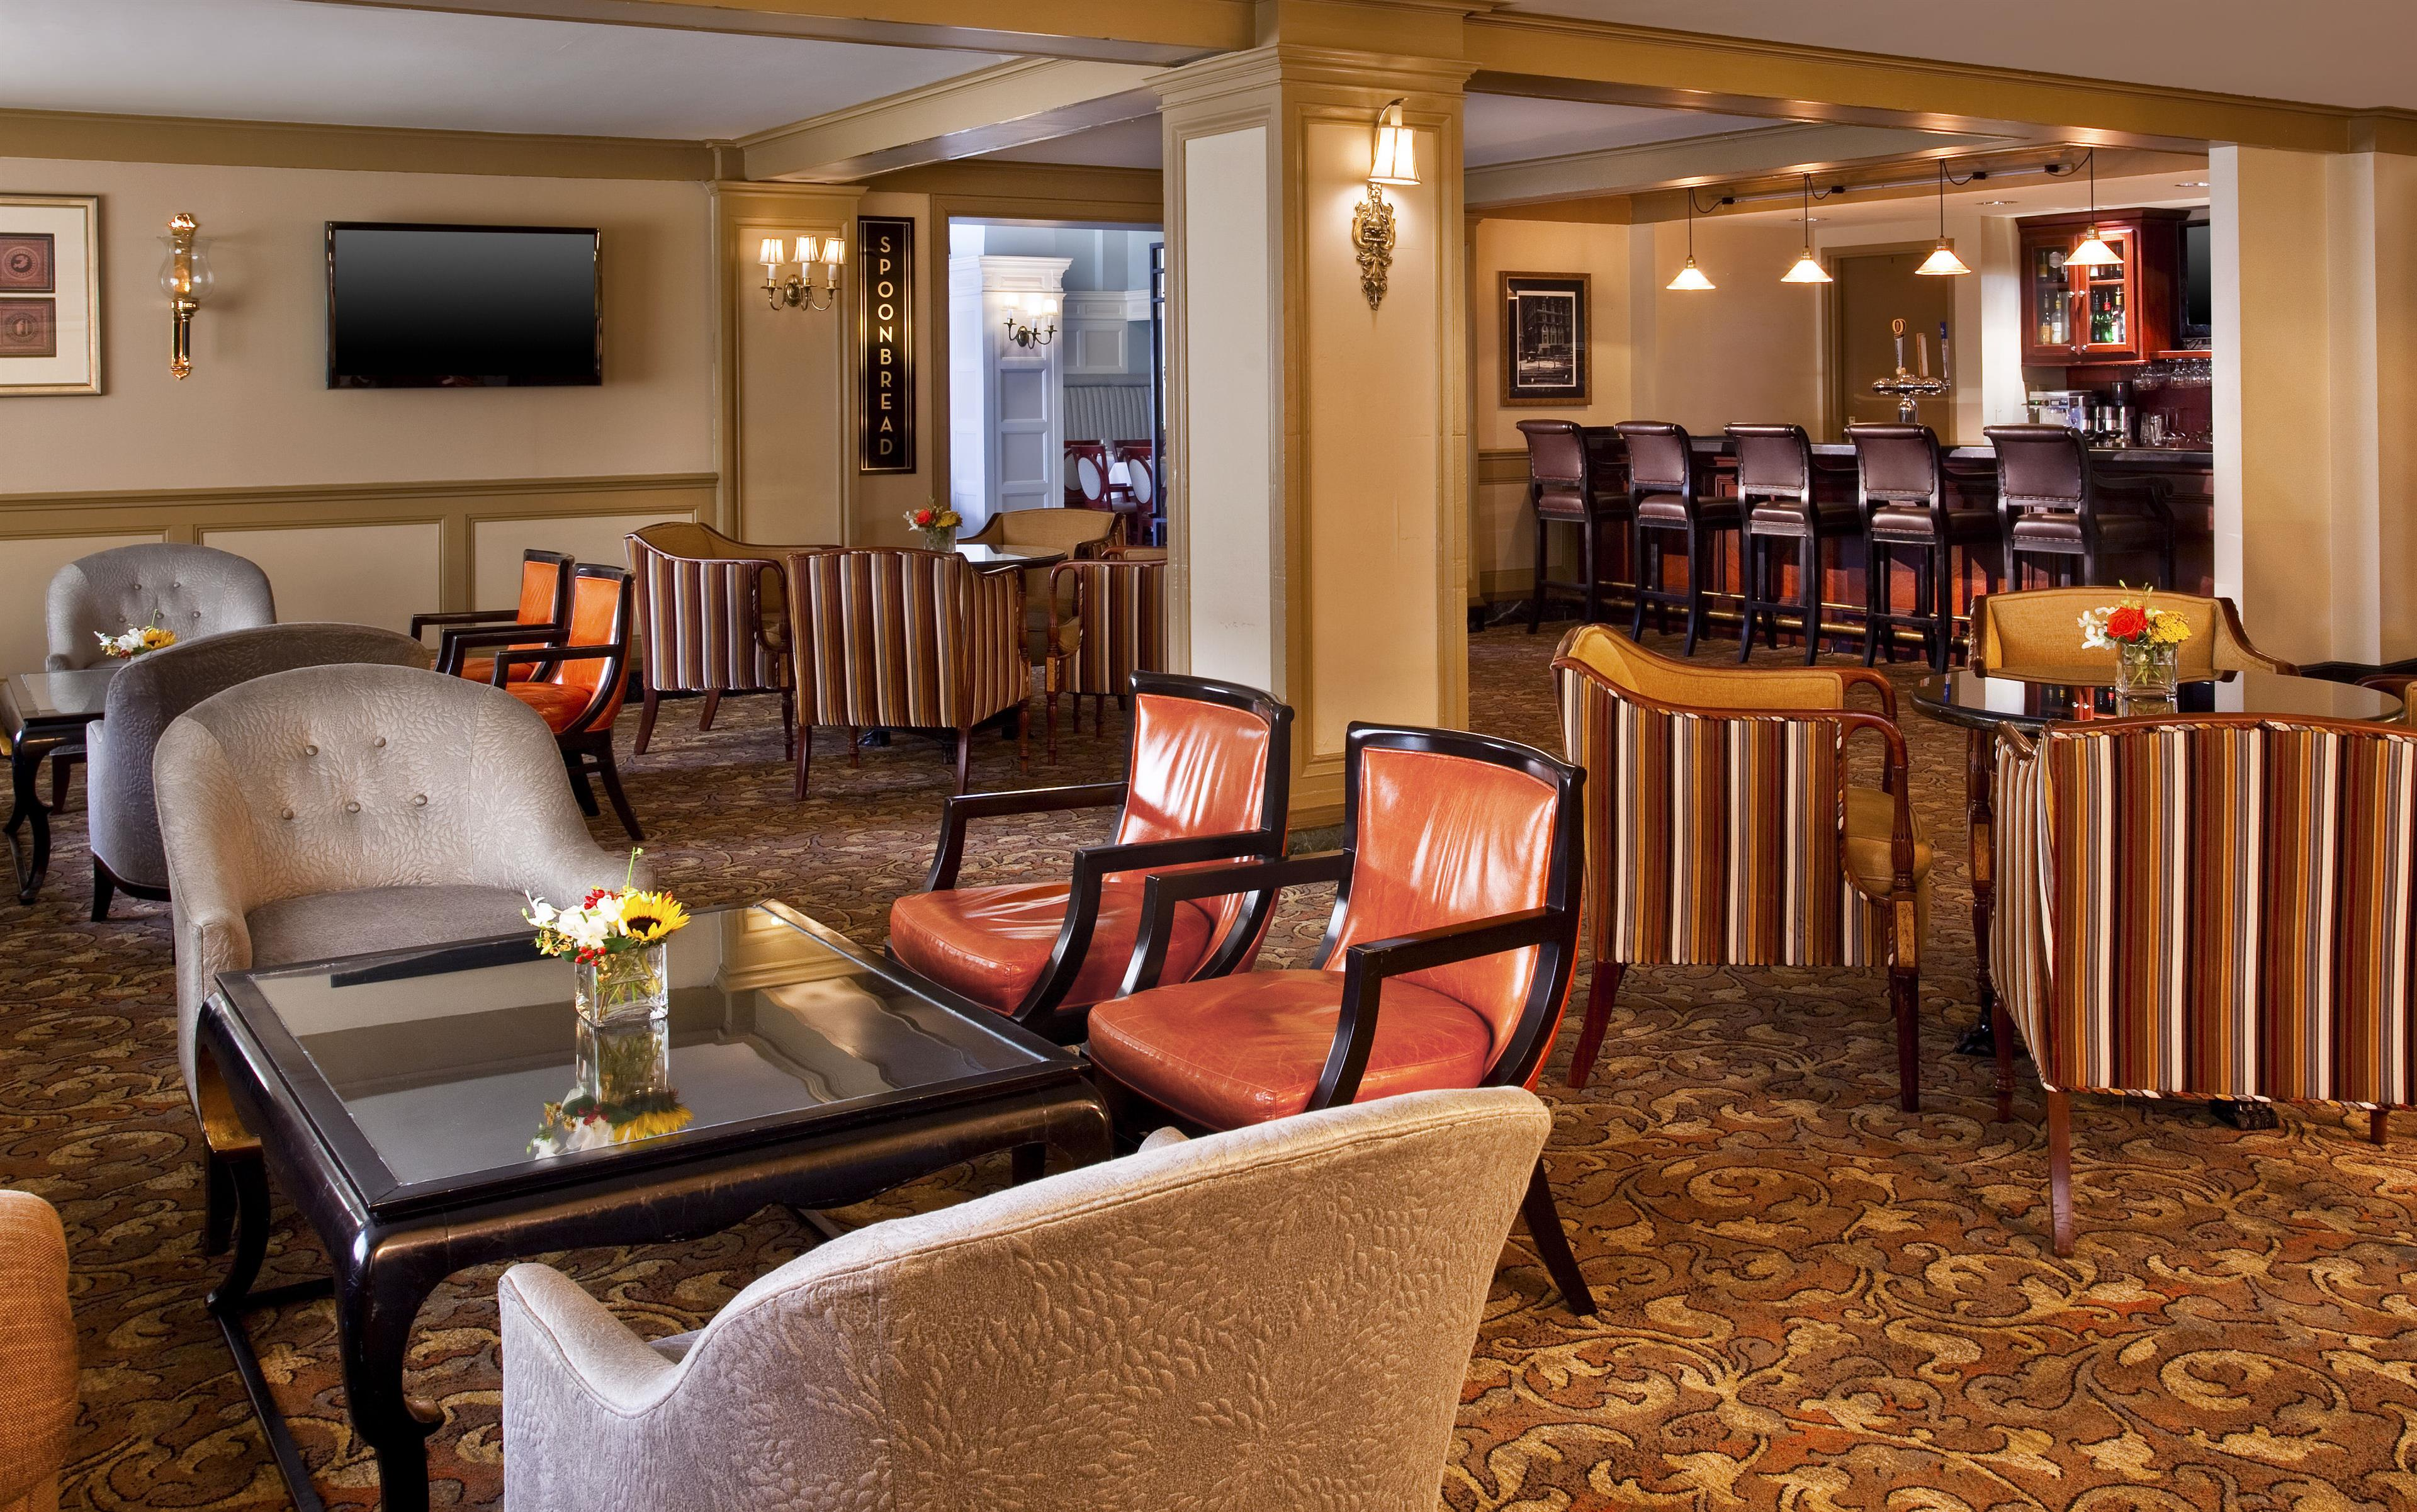 The Westin Poinsett, Greenville Coupons near me in Greenville : 8coupons